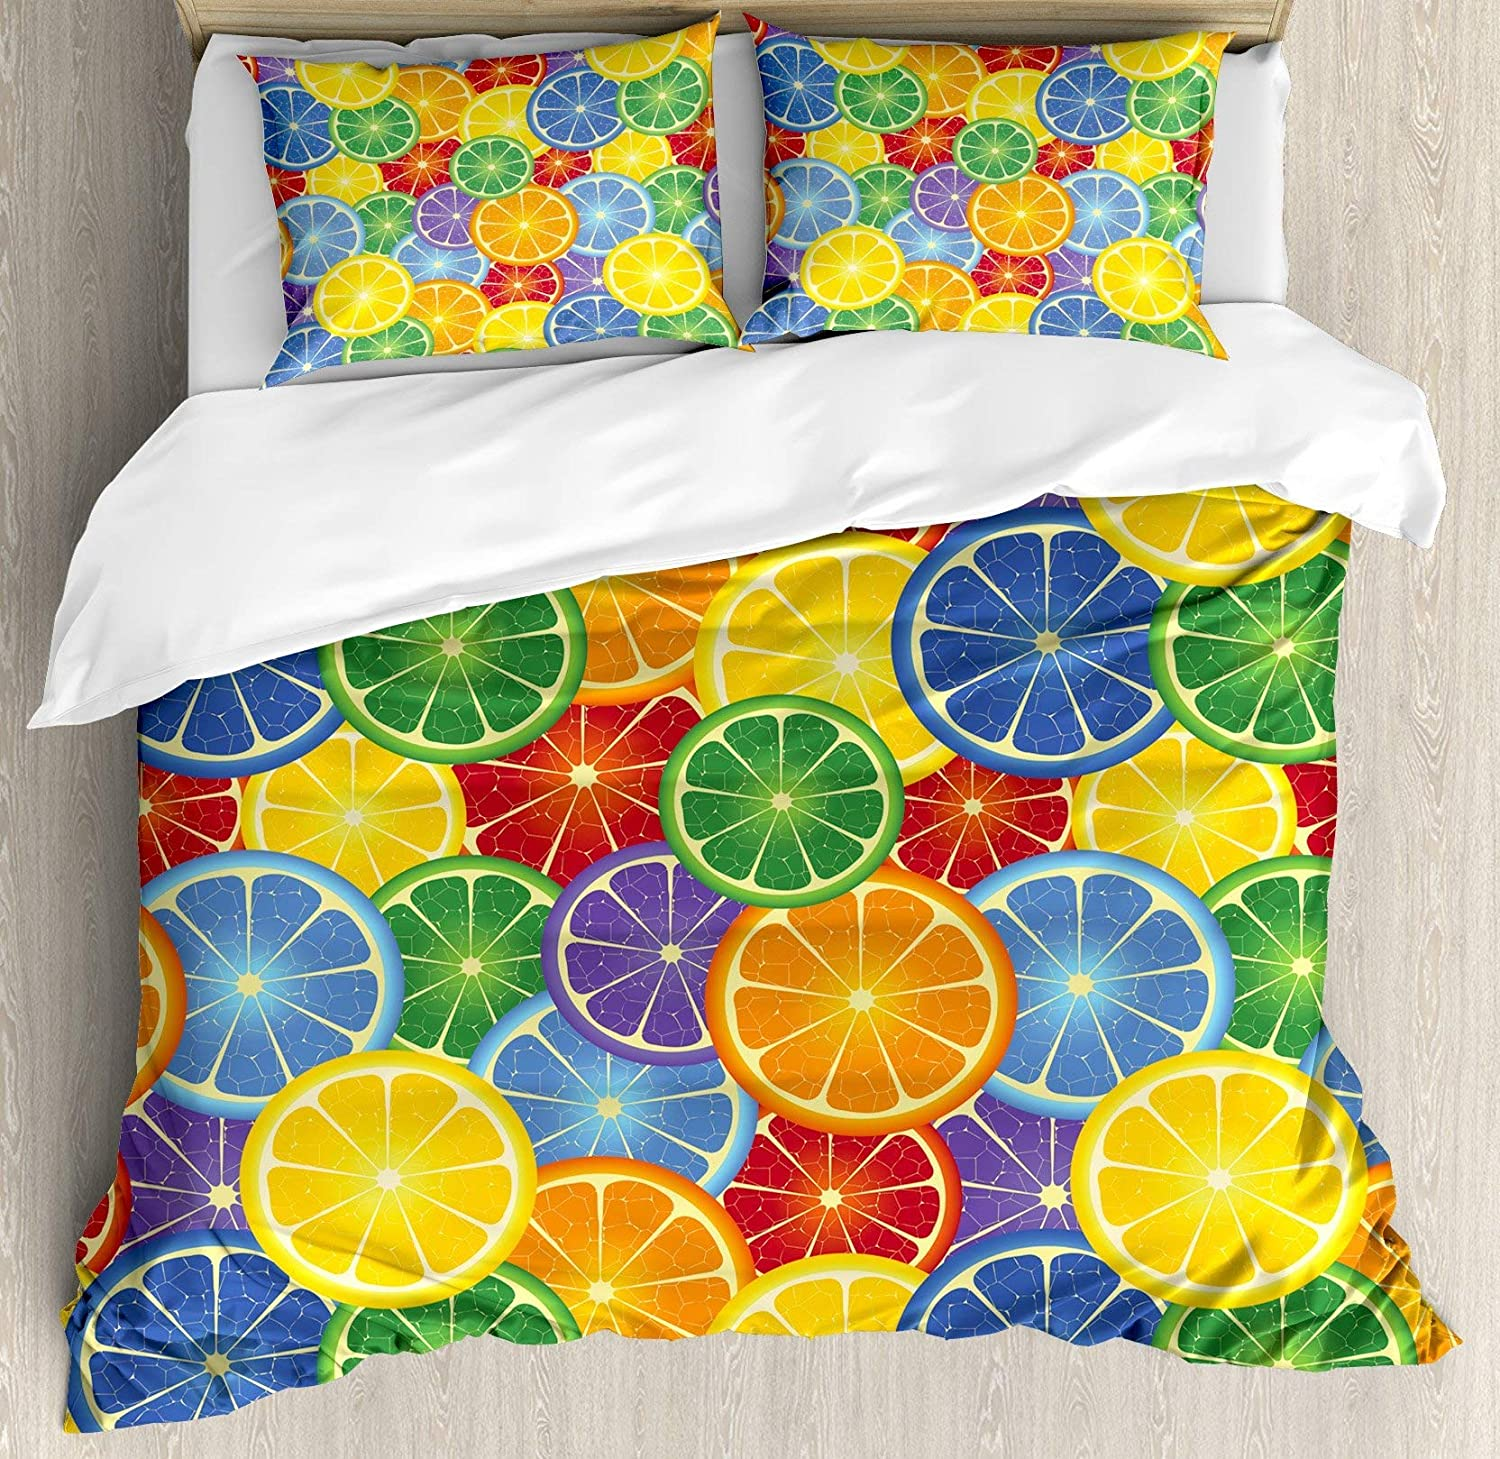 USOPHIA Abstract 4 Pieces Bed Sheets Set Twin Size, colorful Slices of orange Tropical Fruit Rainbow color Fun Artful Design Floral Duvet Cover Set, Yellow bluee Green